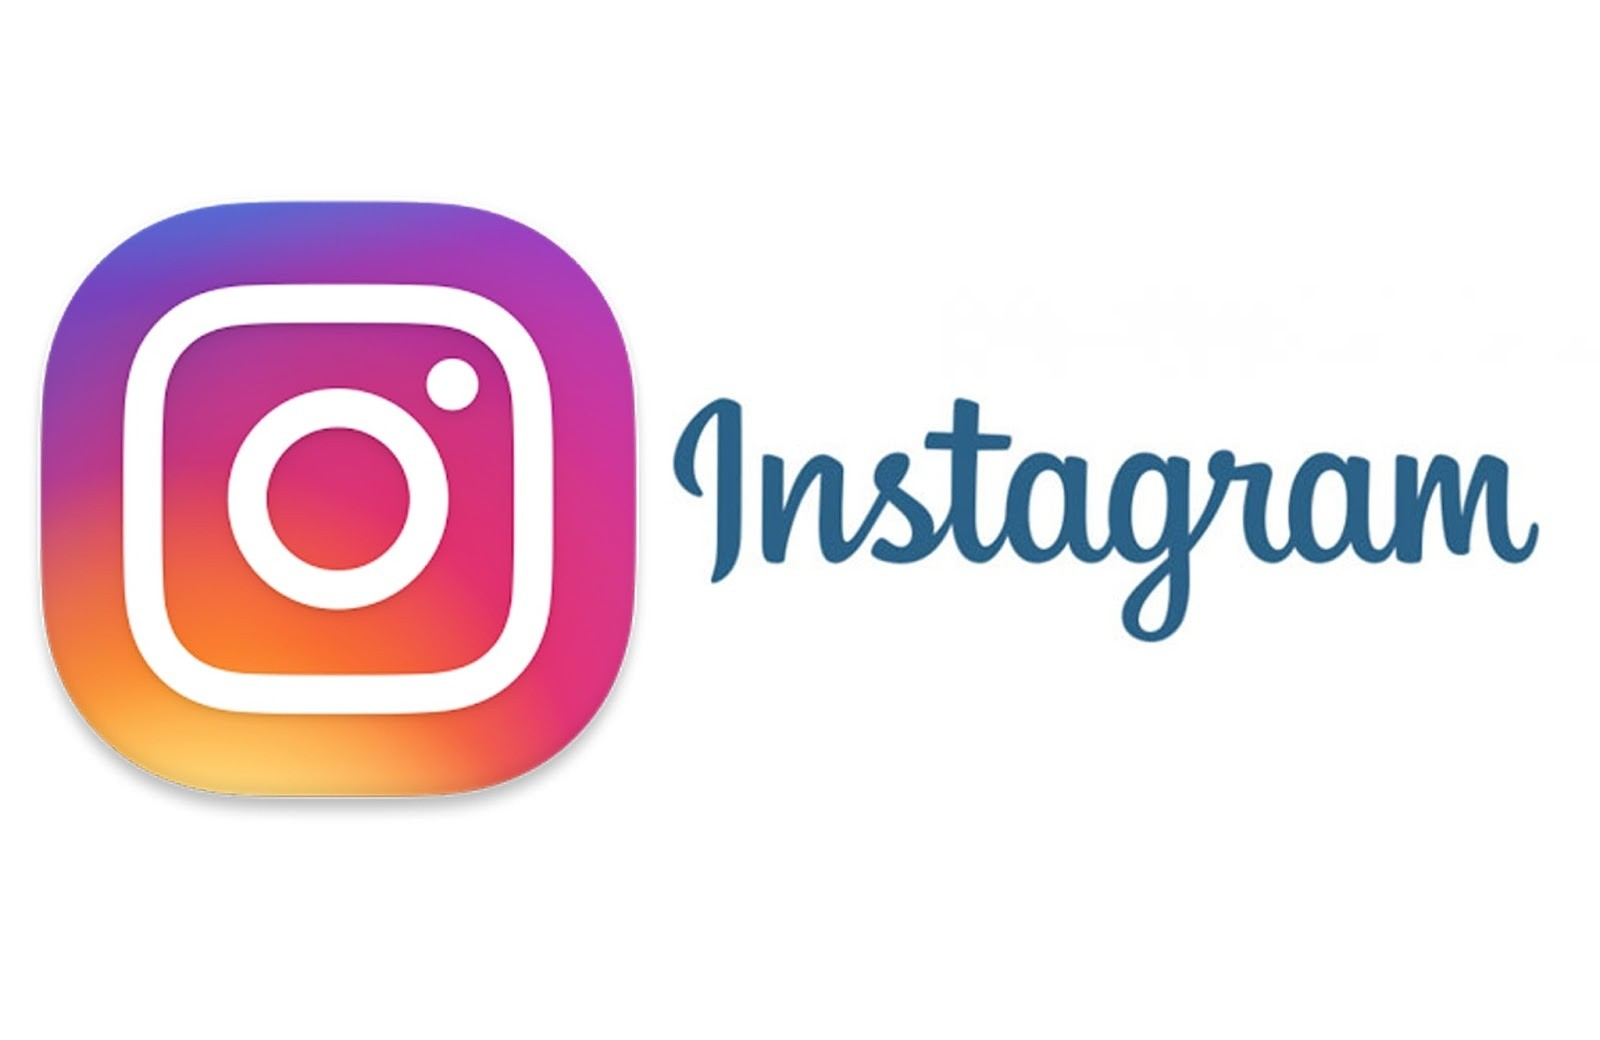 How to see a specific person's activity on Instagram - Quora